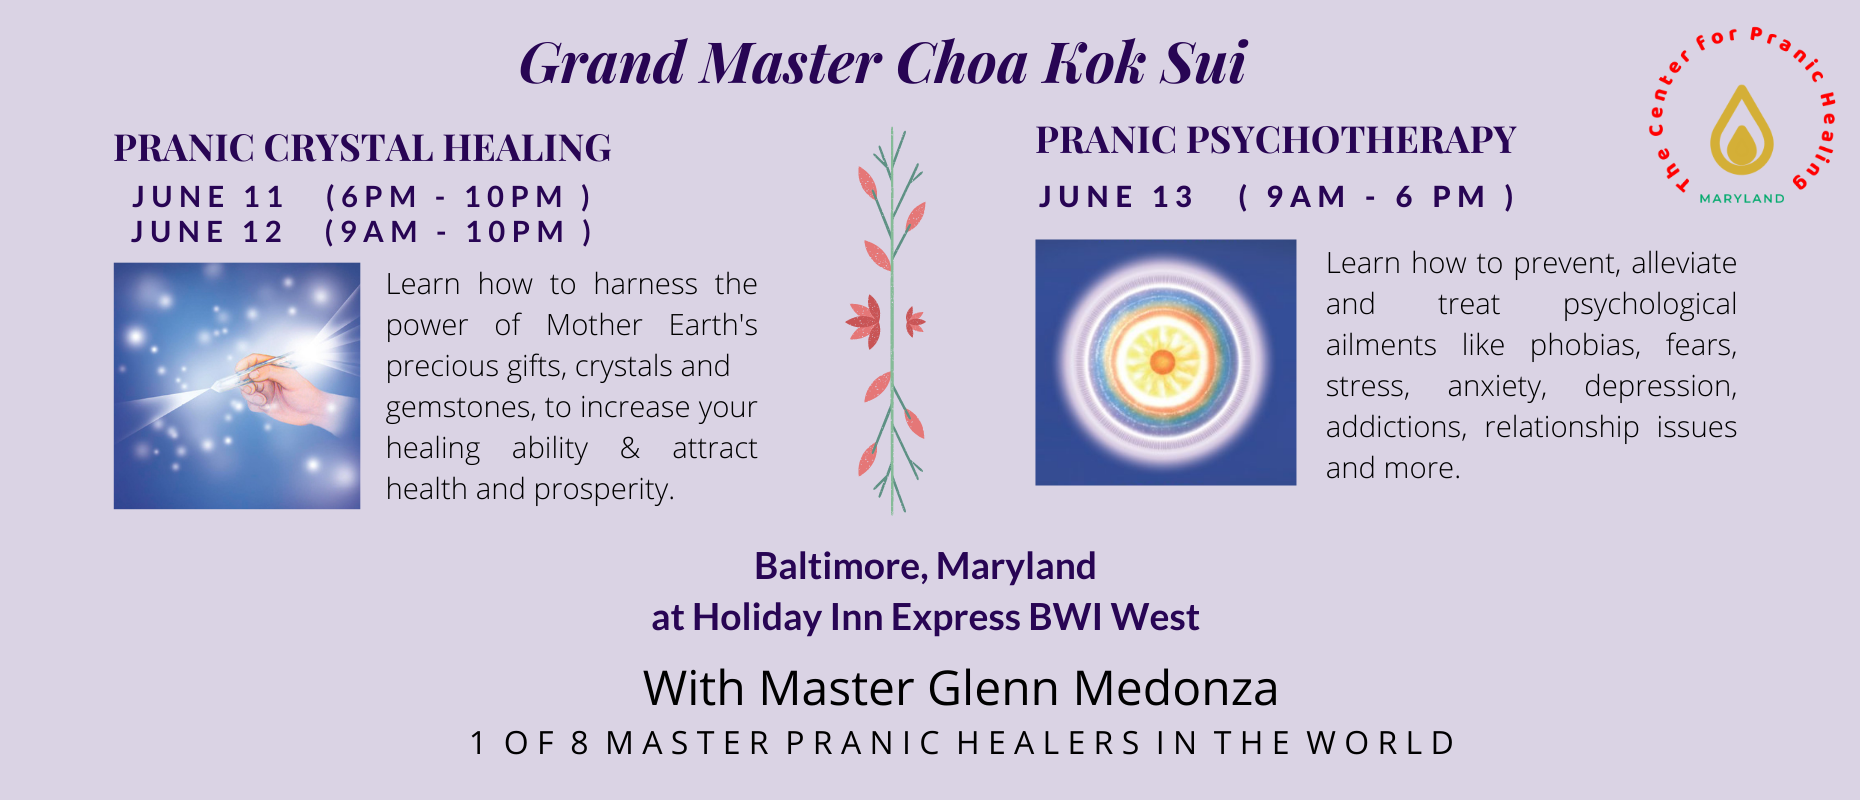 Pranic Crystal & Psychotherapy